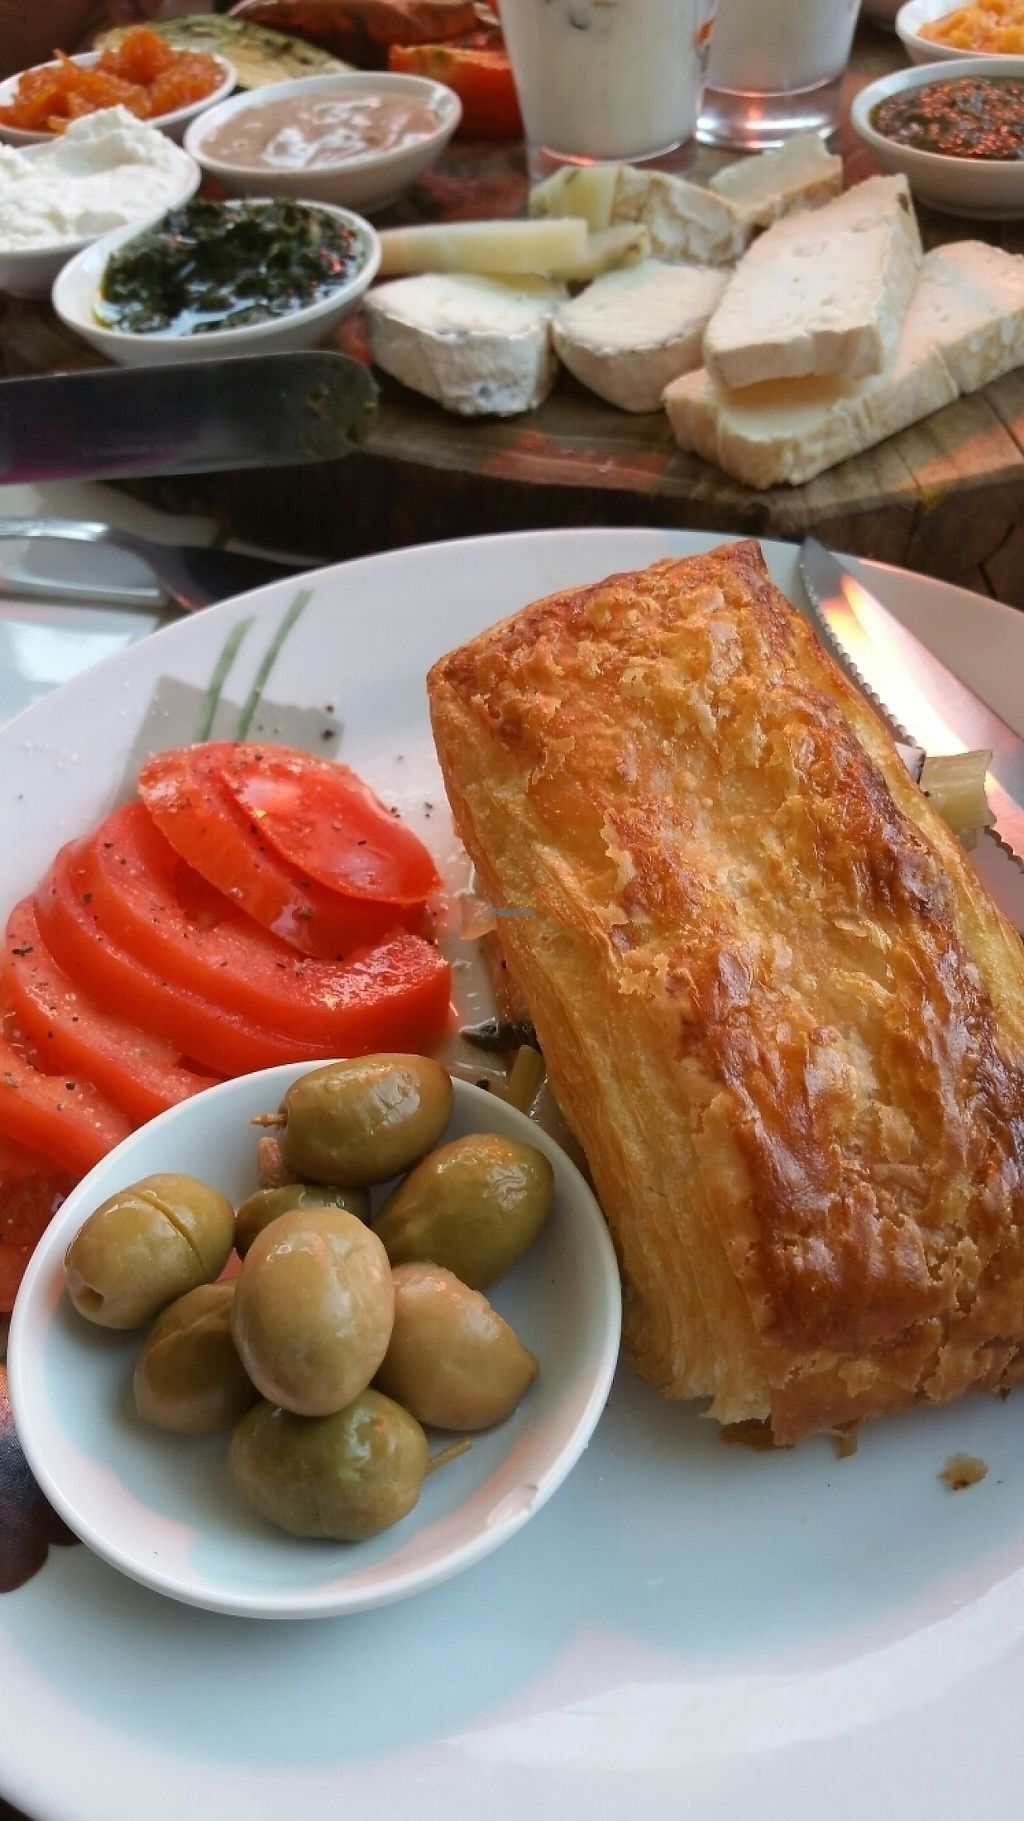 """Photo of Ofaimme  by <a href=""""/members/profile/steffaux"""">steffaux</a> <br/>Two types of breakfast (served all day) <br/> December 22, 2016  - <a href='/contact/abuse/image/80467/204119'>Report</a>"""